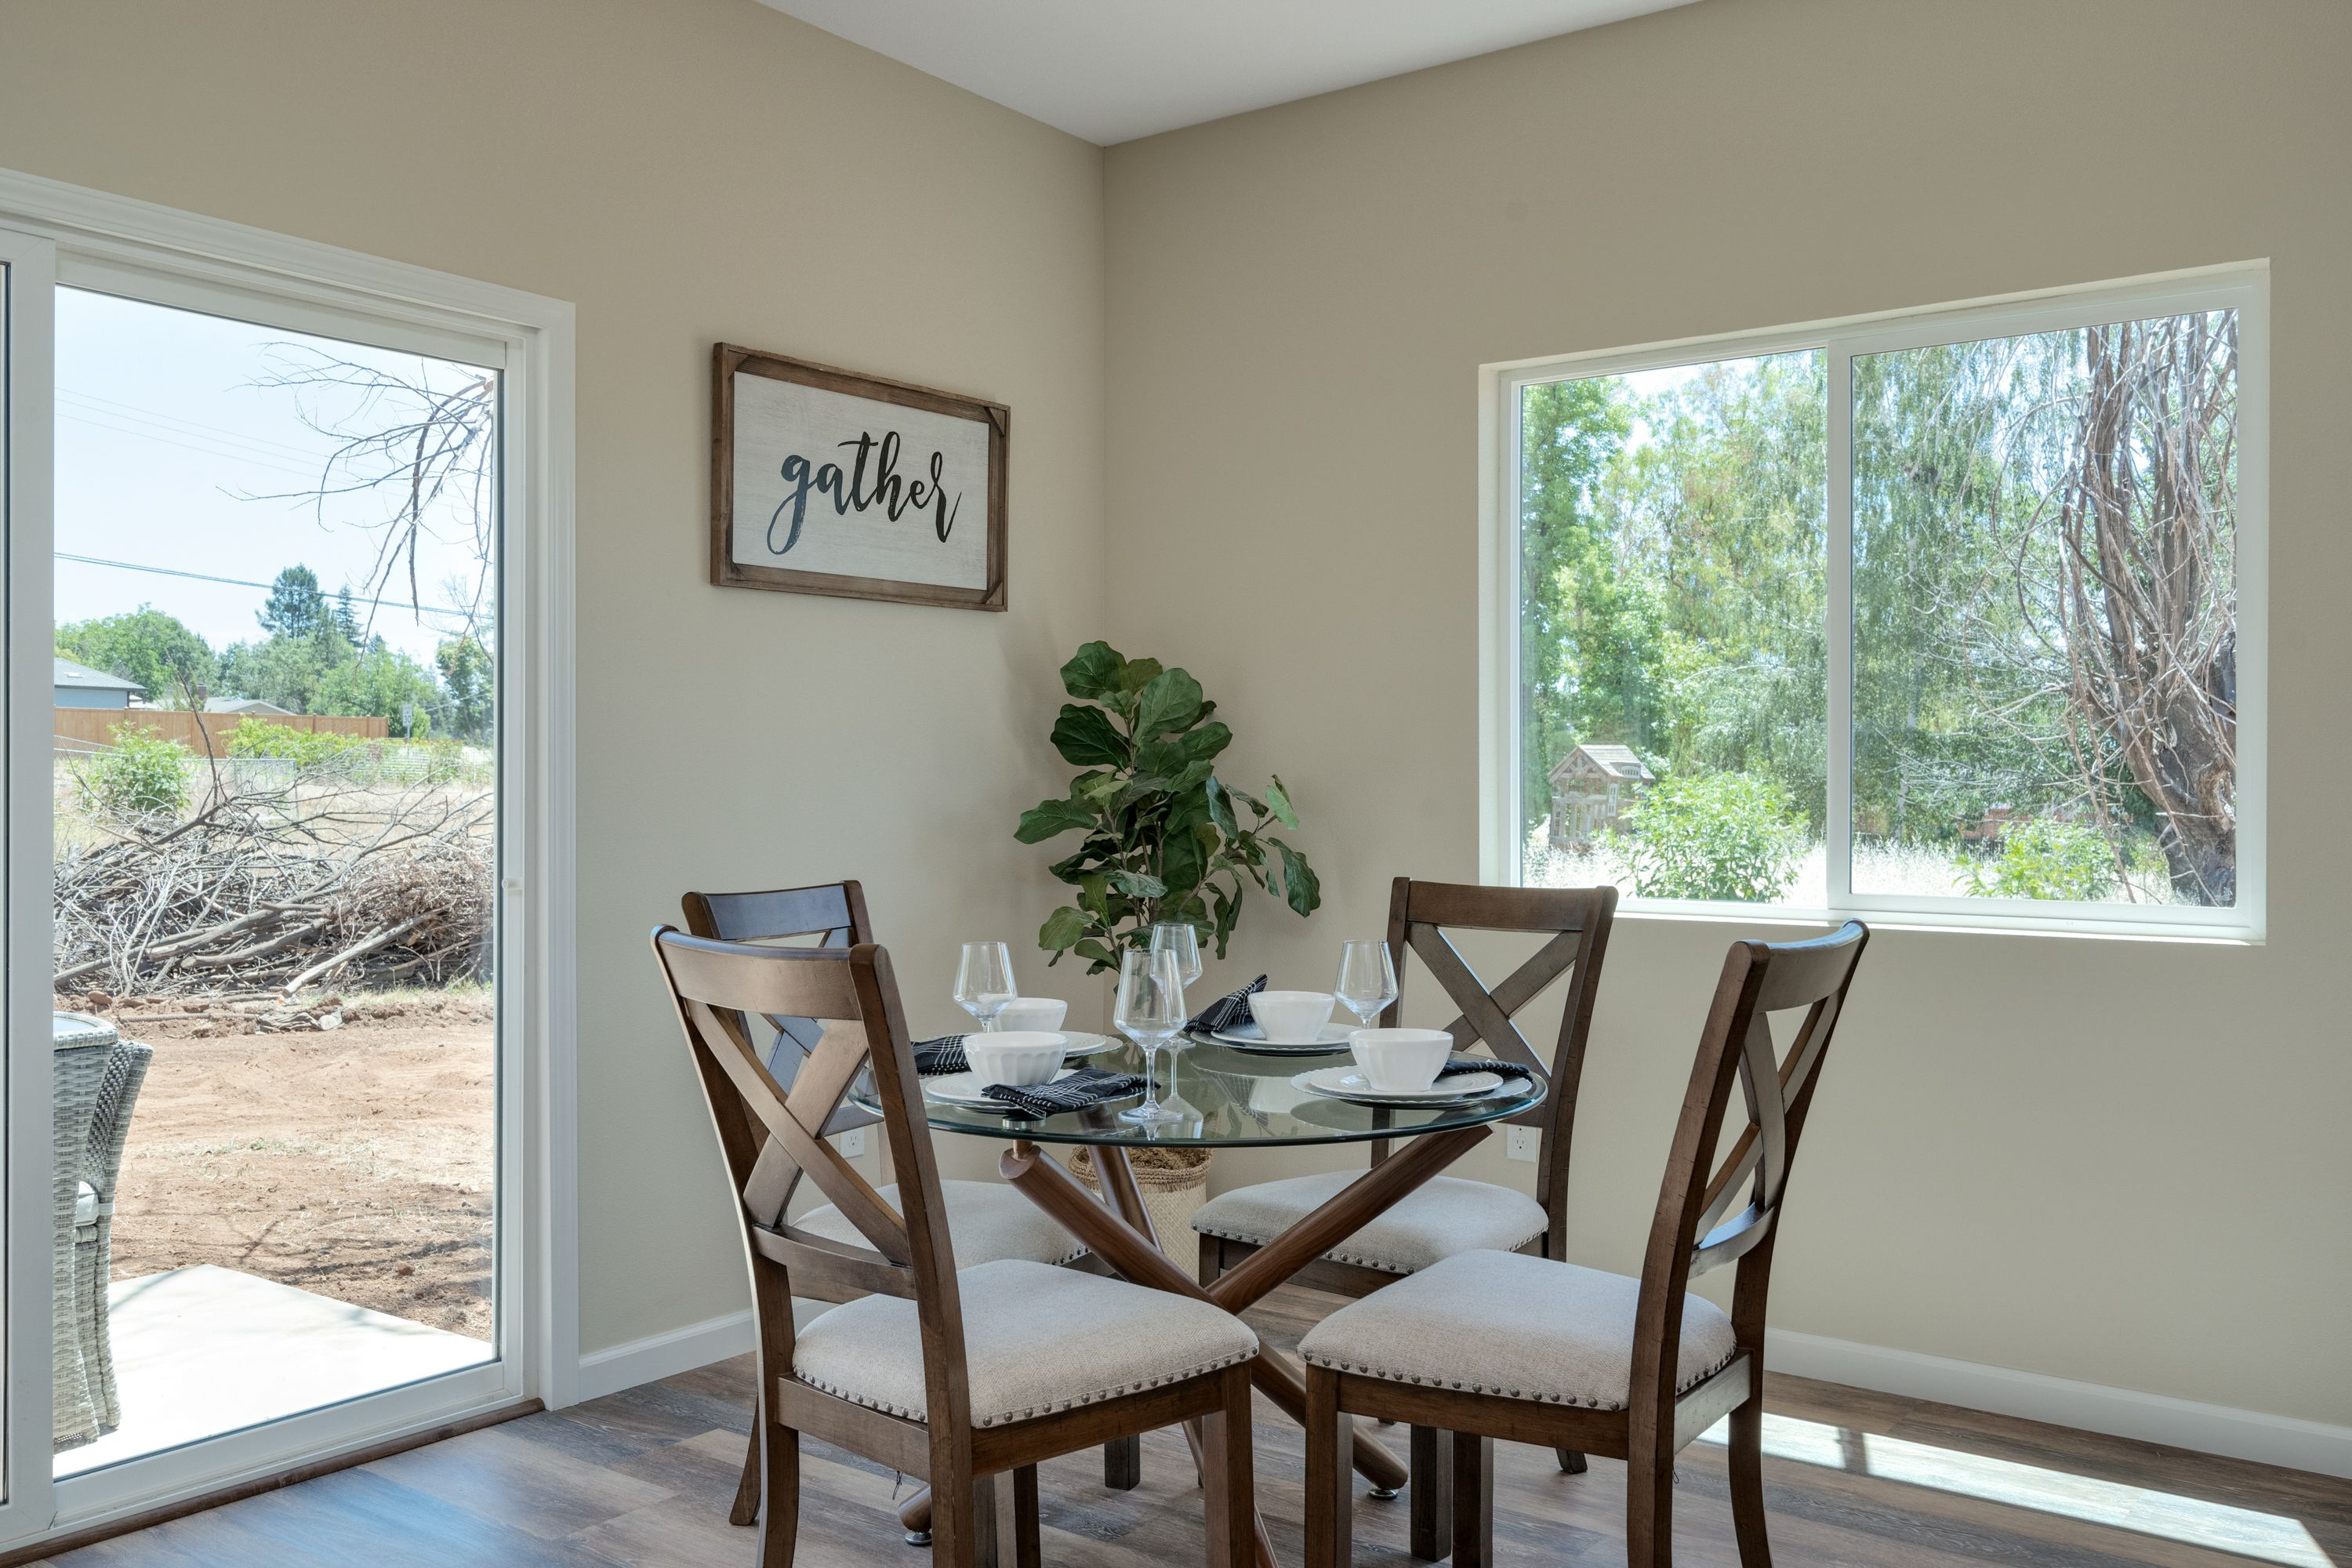 Kitchen featured in the 5870 Jaguar Ct By Silvermark Luxury Homes in Chico, CA